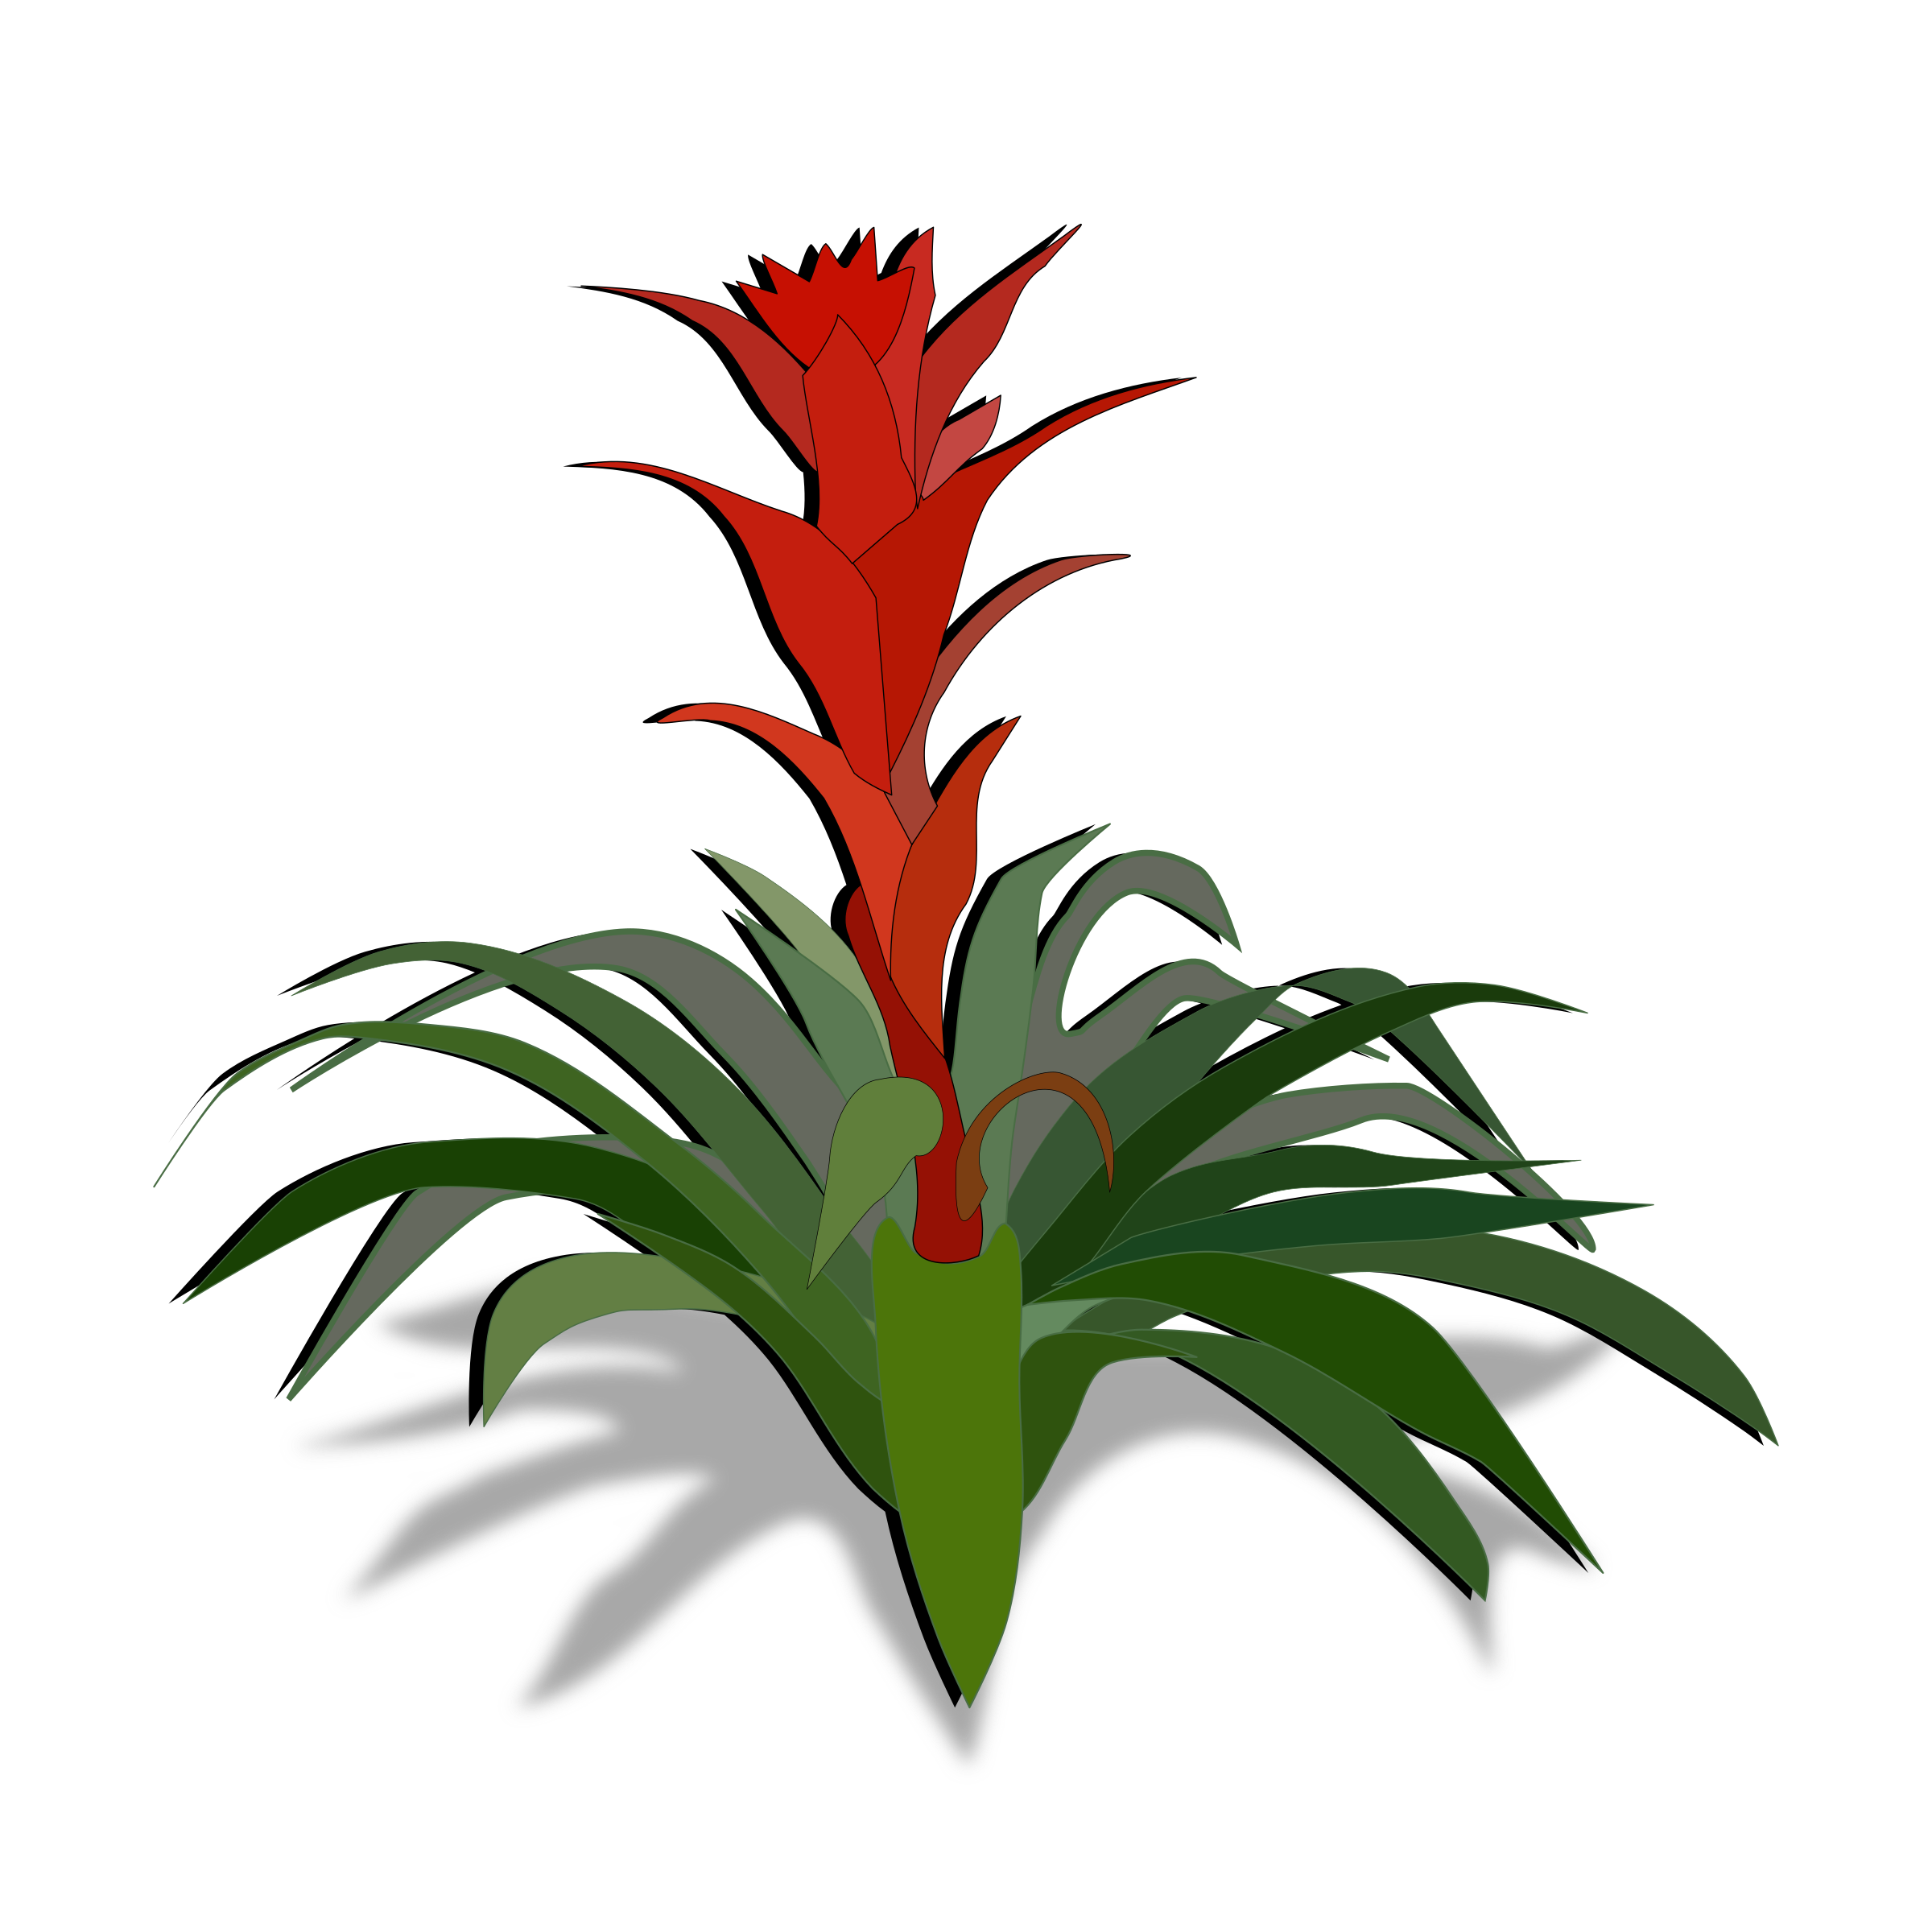 Bromelia clipart #8, Download drawings